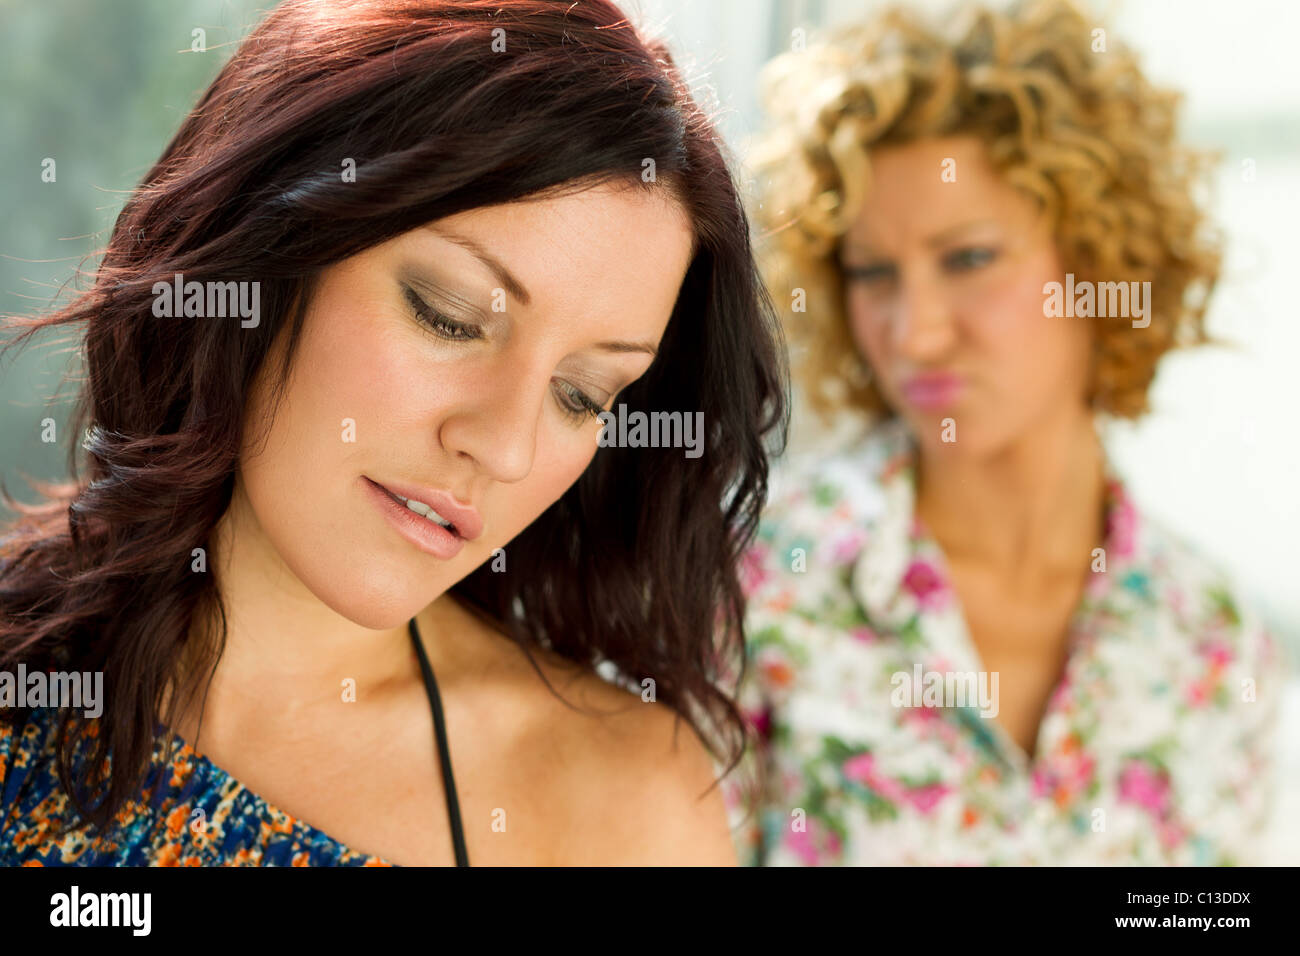 Two women together - Stock Image